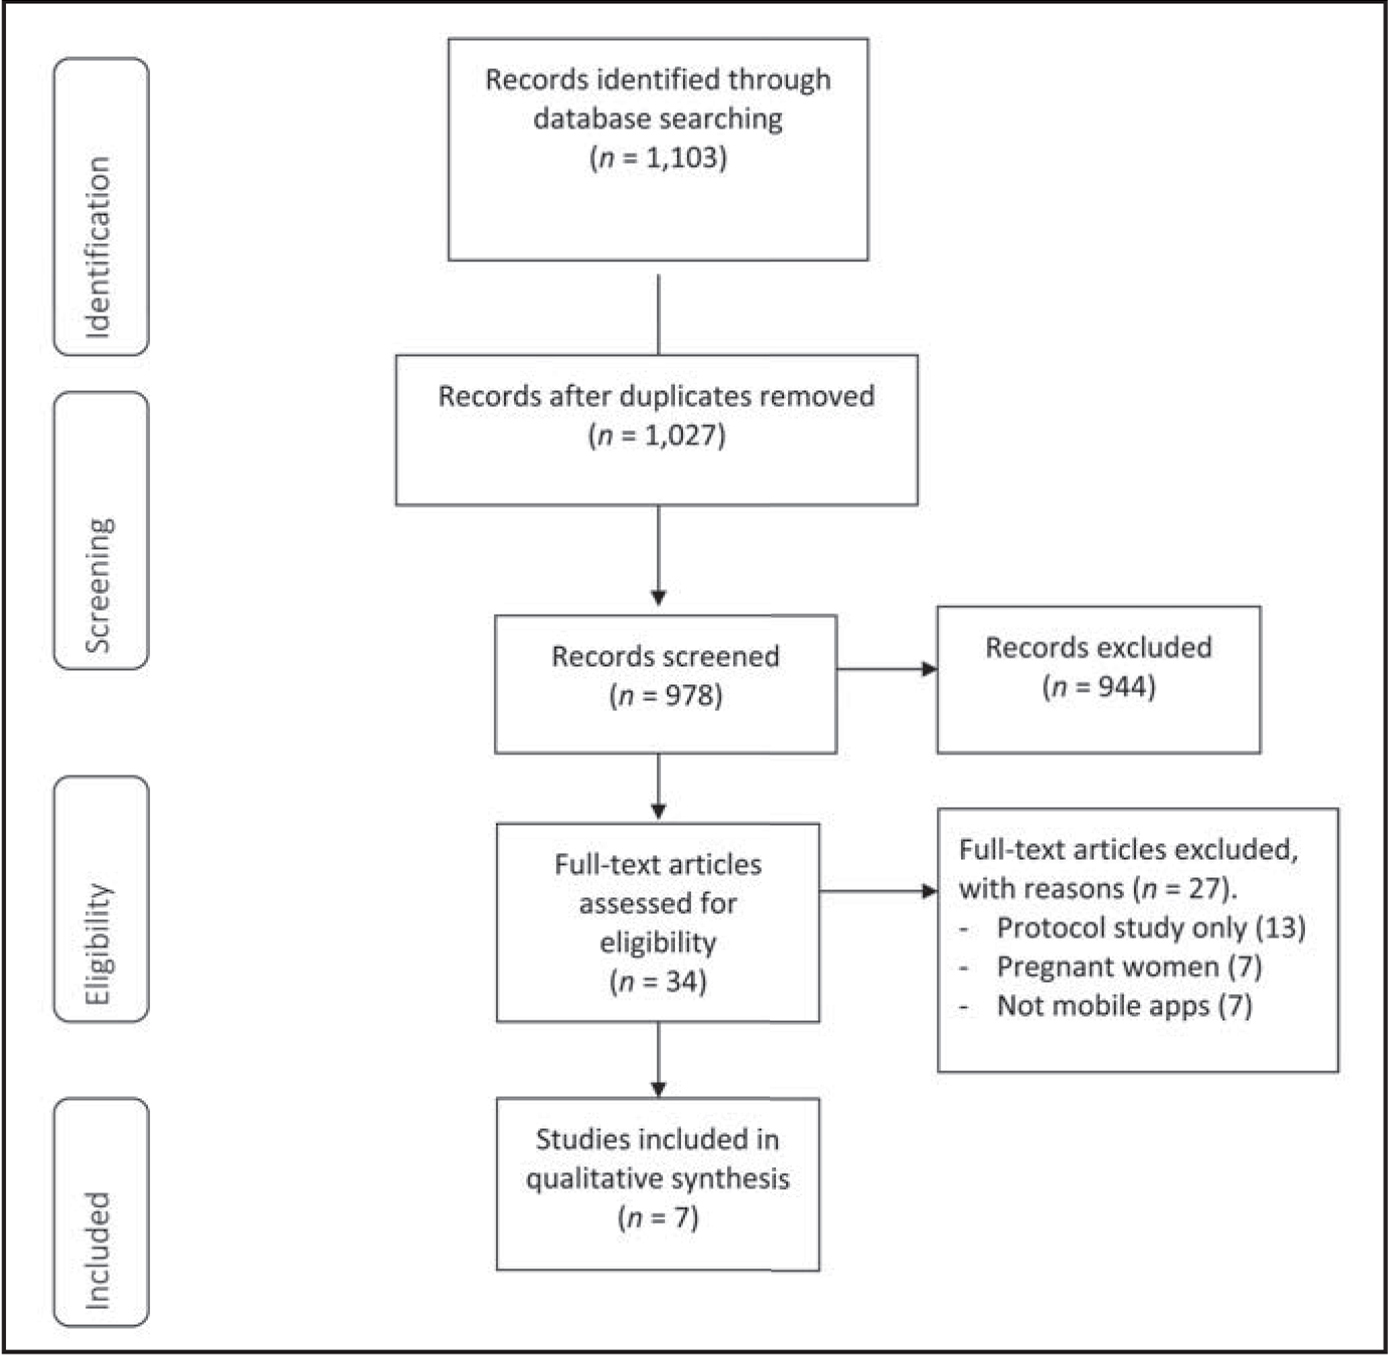 Preferred Reporting Items for Systematic Reviews and Meta-Analyses (Moher et al., 2009) flow diagram.